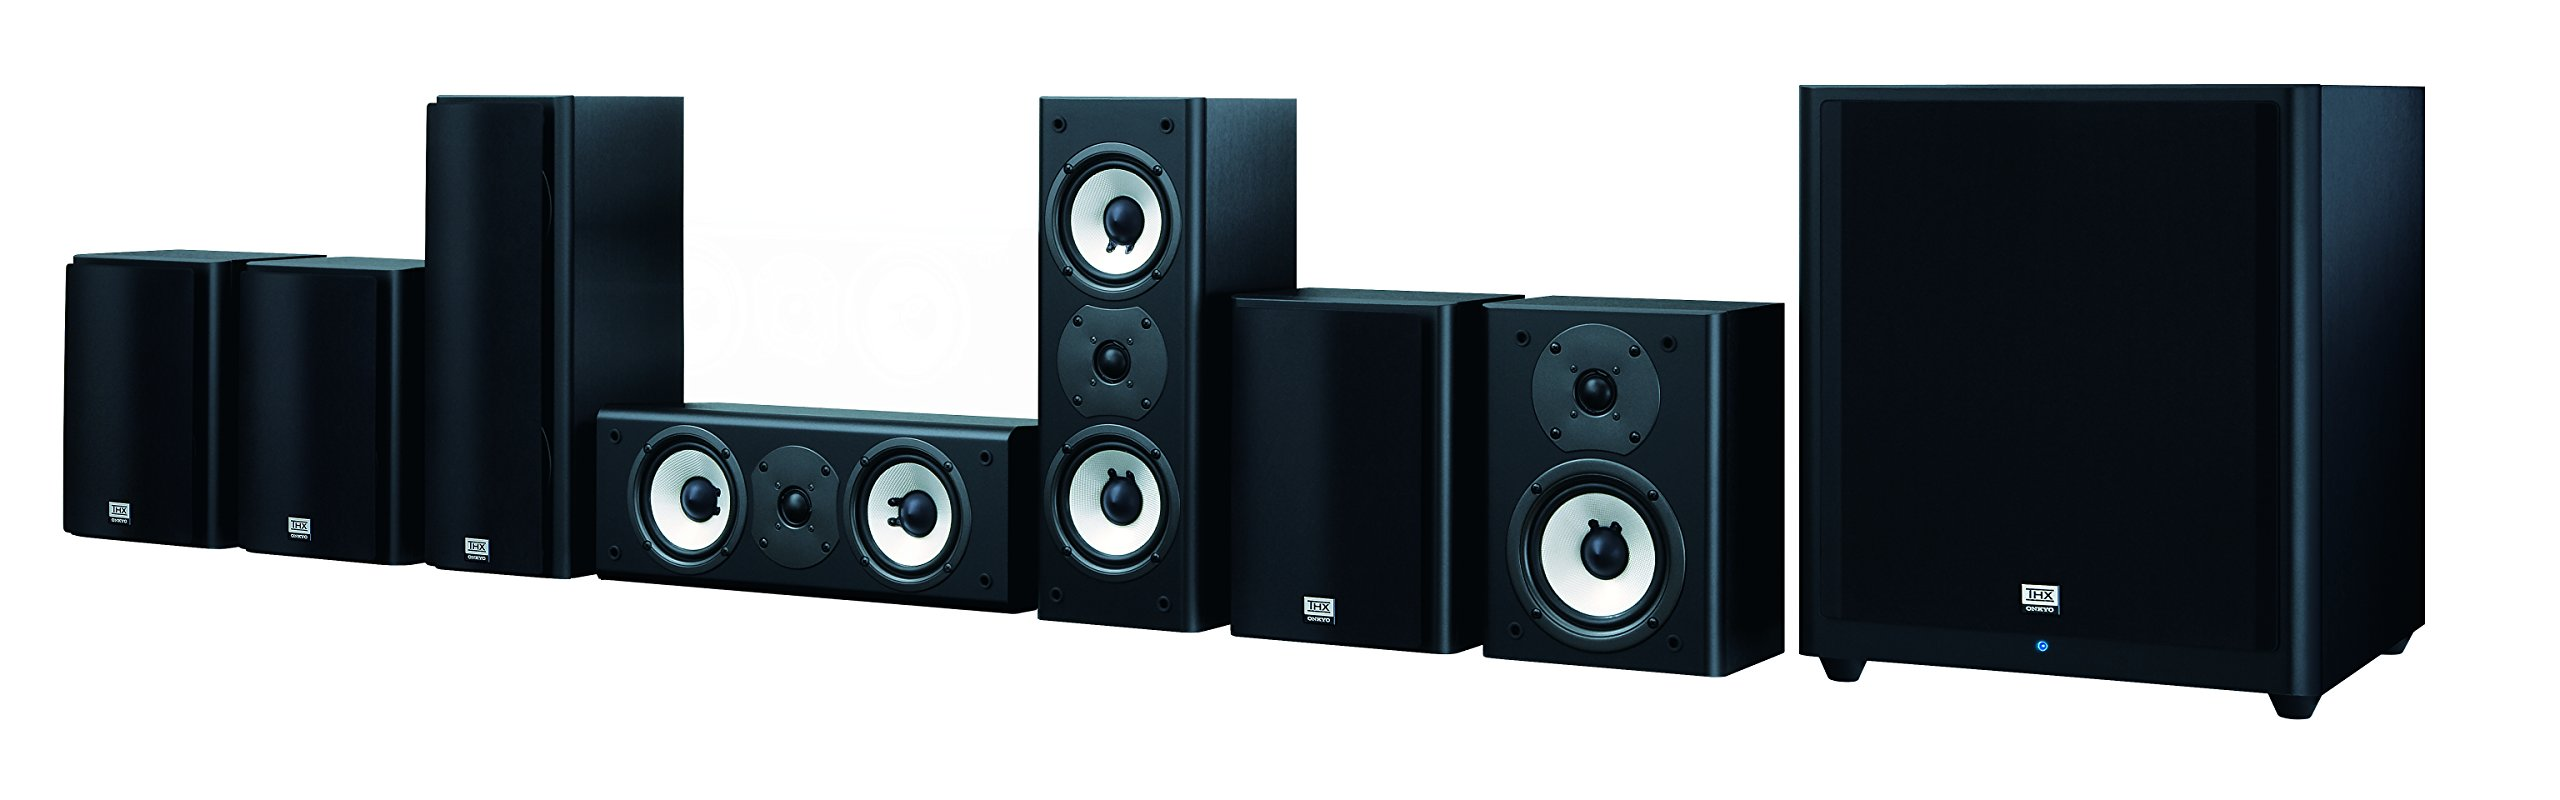 best rated in surround sound systems helpful customer. Black Bedroom Furniture Sets. Home Design Ideas